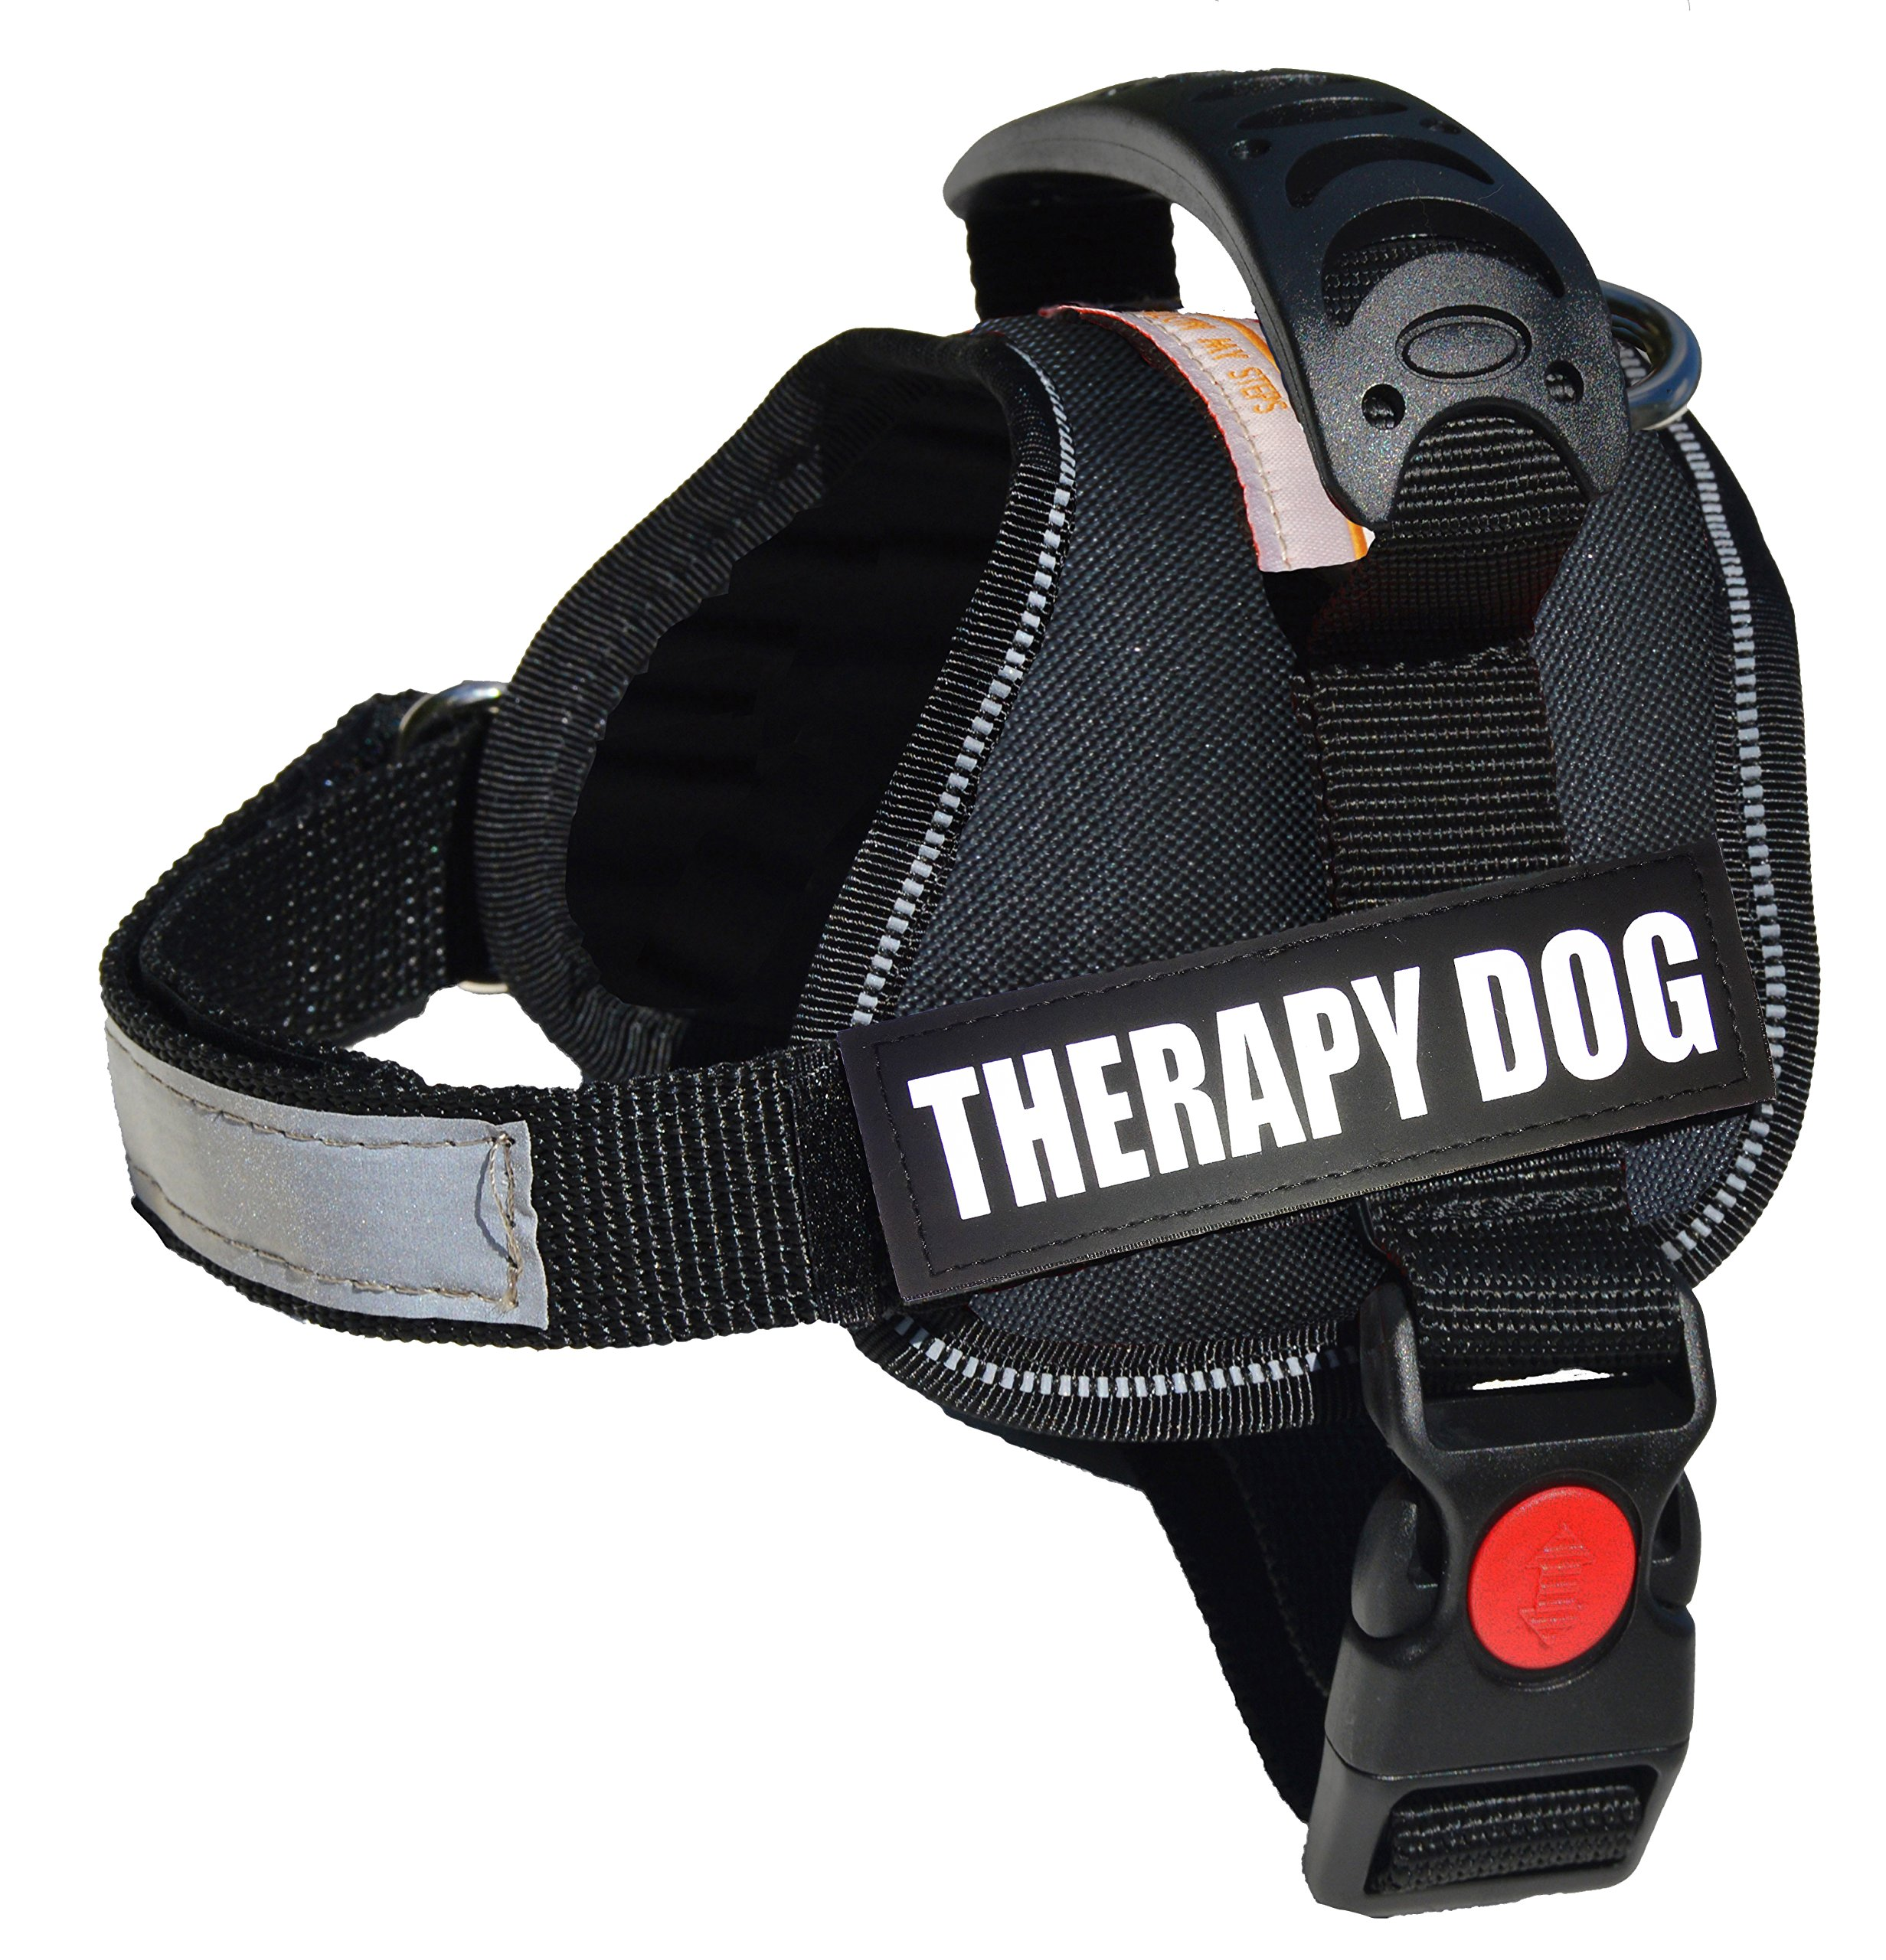 ALBCORP Reflective Therapy Dog Vest Harness, Woven Polyester & Nylon, Adjustable Service Animal Jacket, with 2 Hook and Loop Therapy Dog Removable Patches, Extra Small, Black